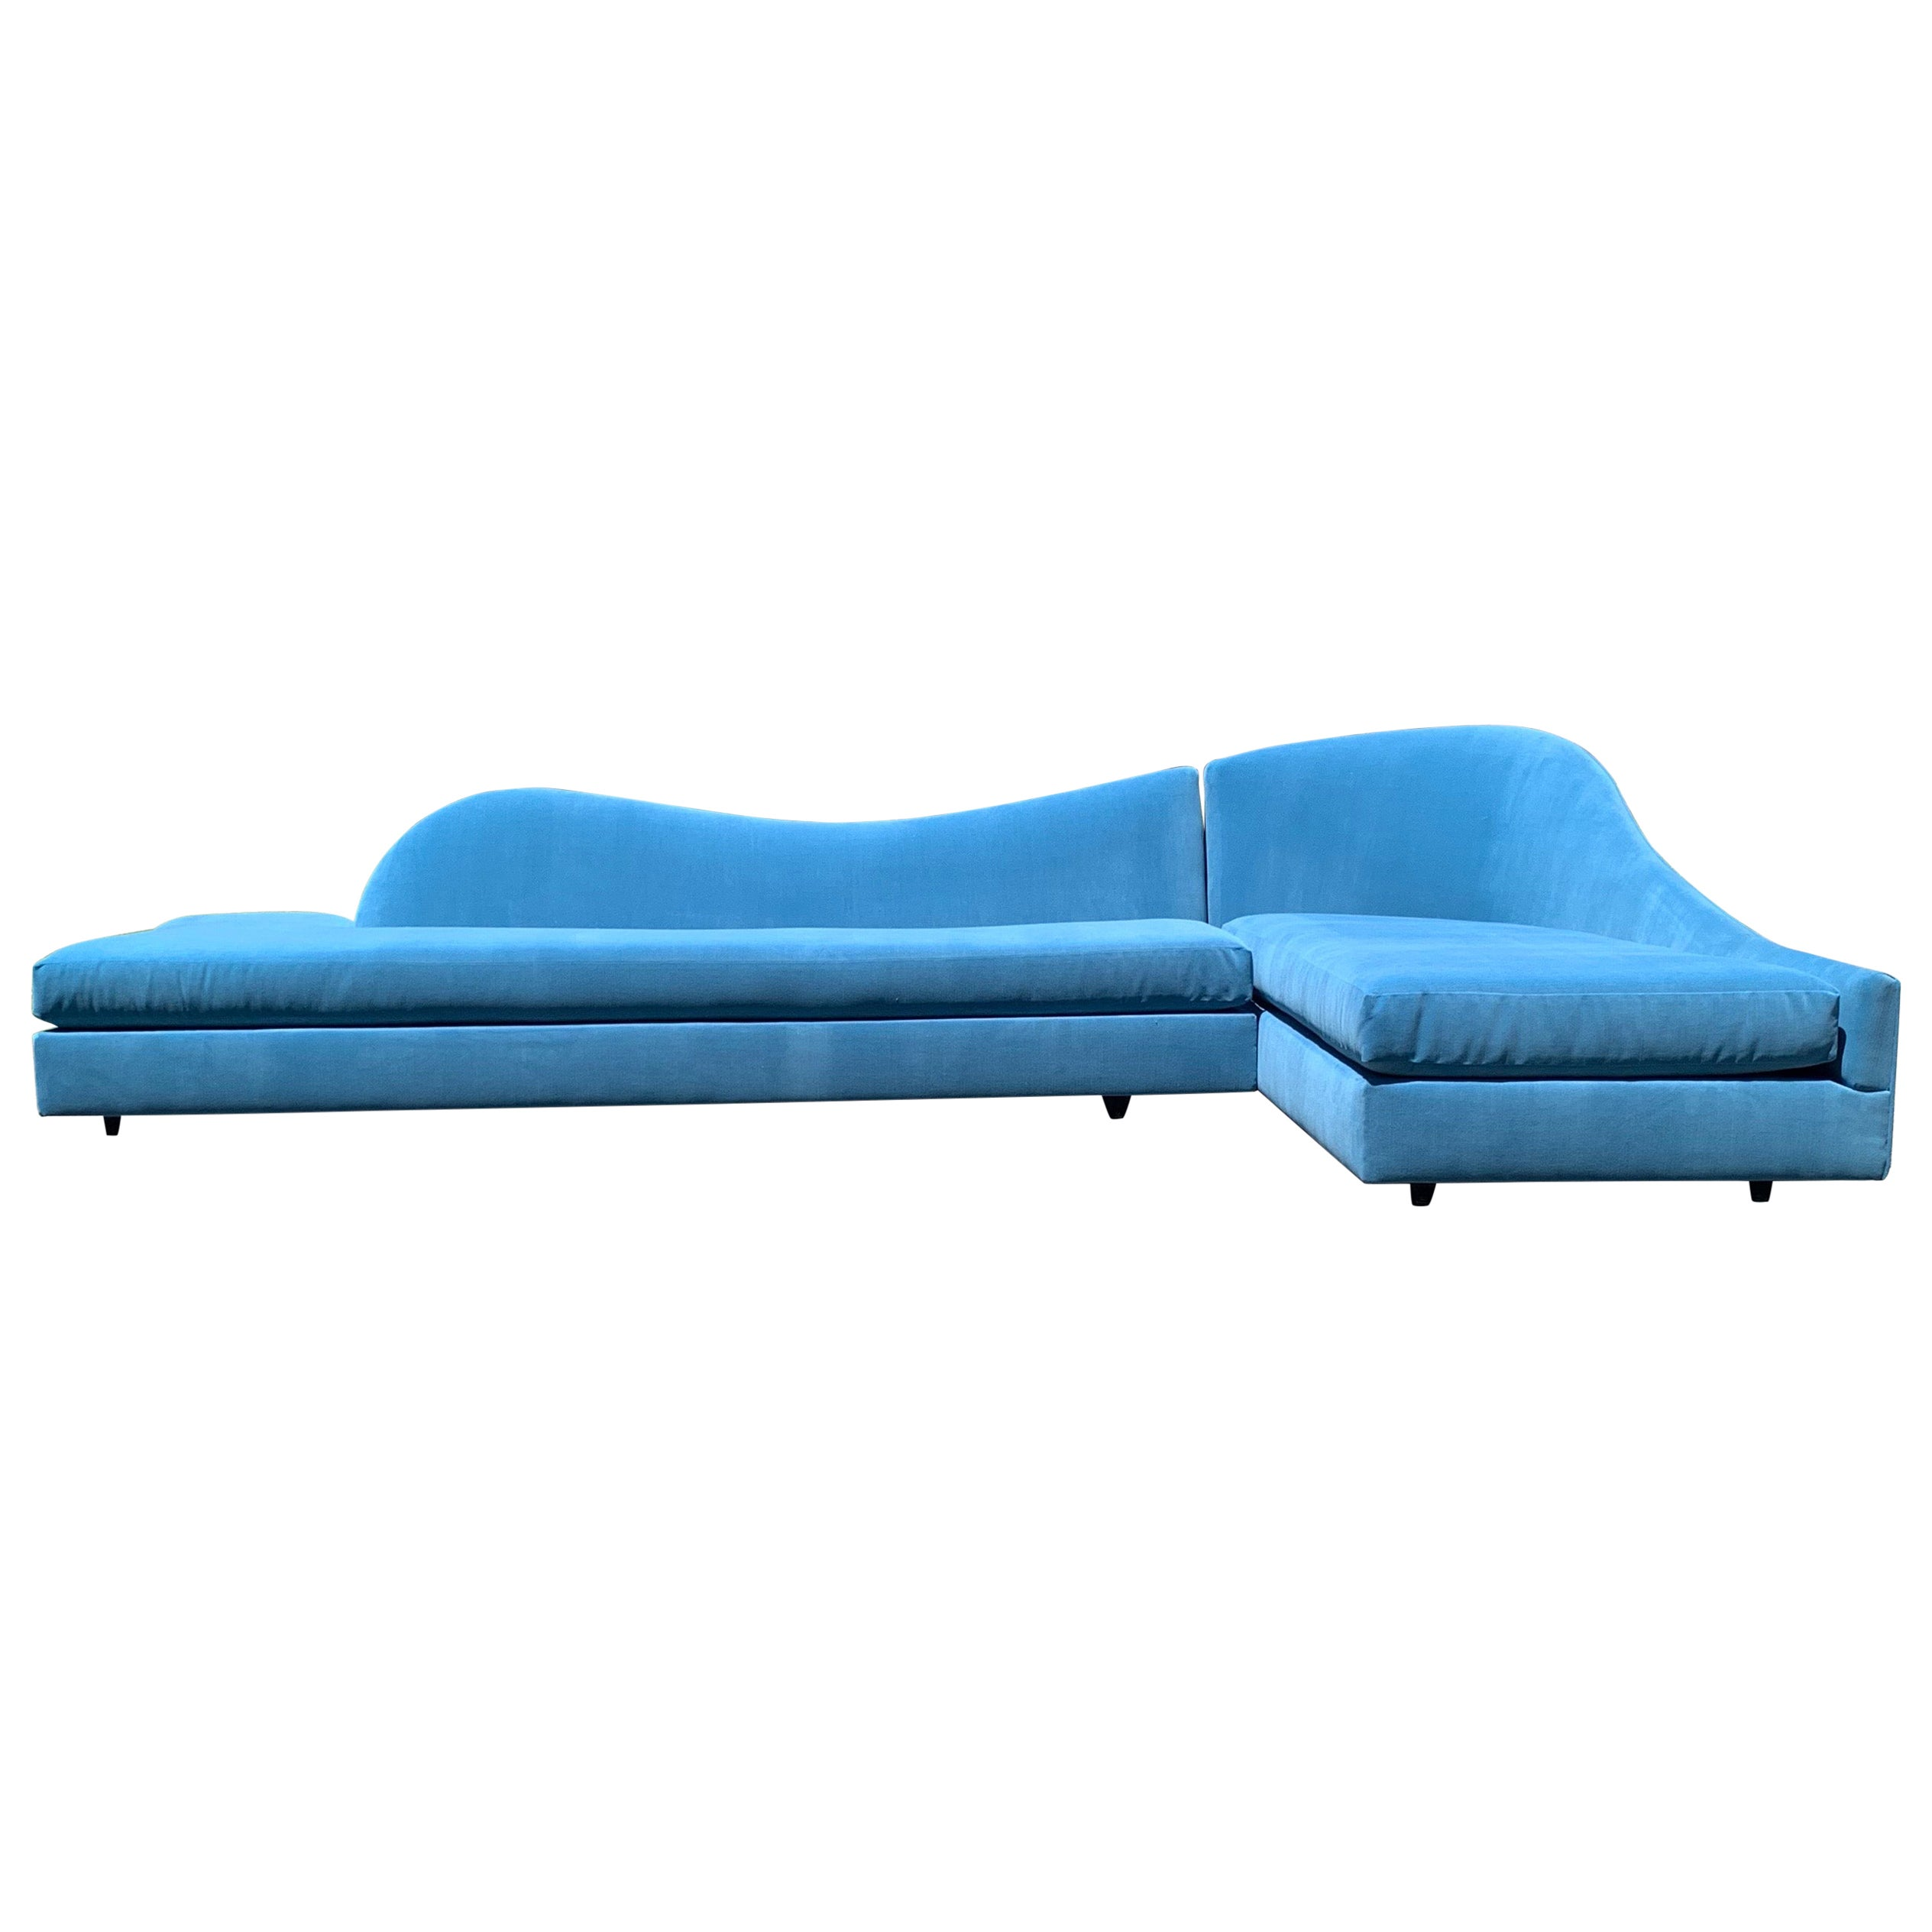 Adrian Pearsall for Craft Associates 2-Piece Sectional Cloud Sofa